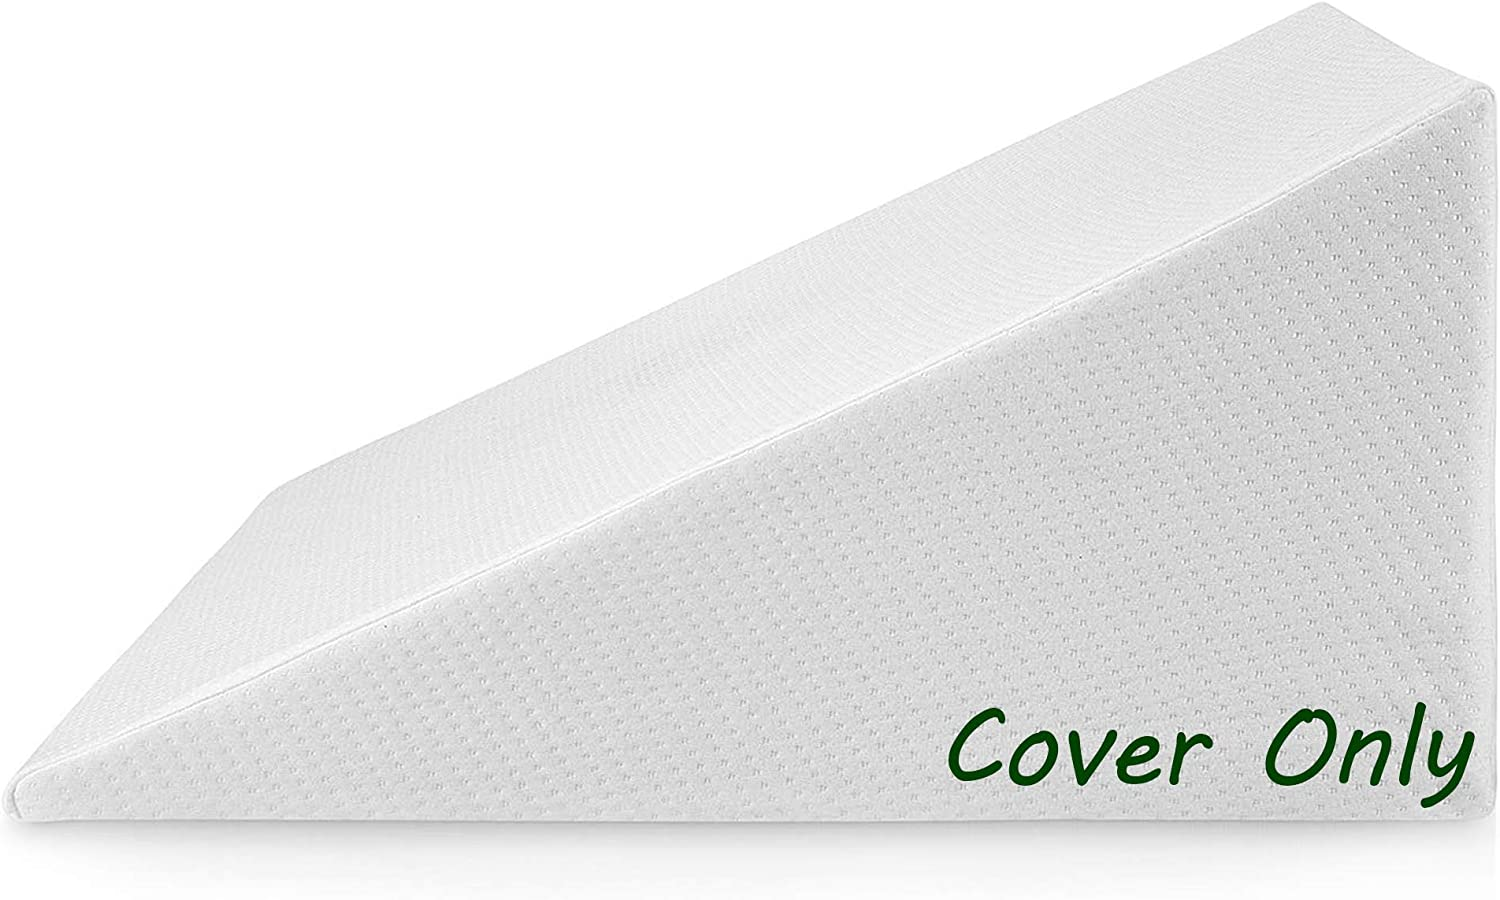 Bed Wedge Pillow Cover sold out - Abco Inch Tech Fits List price 12